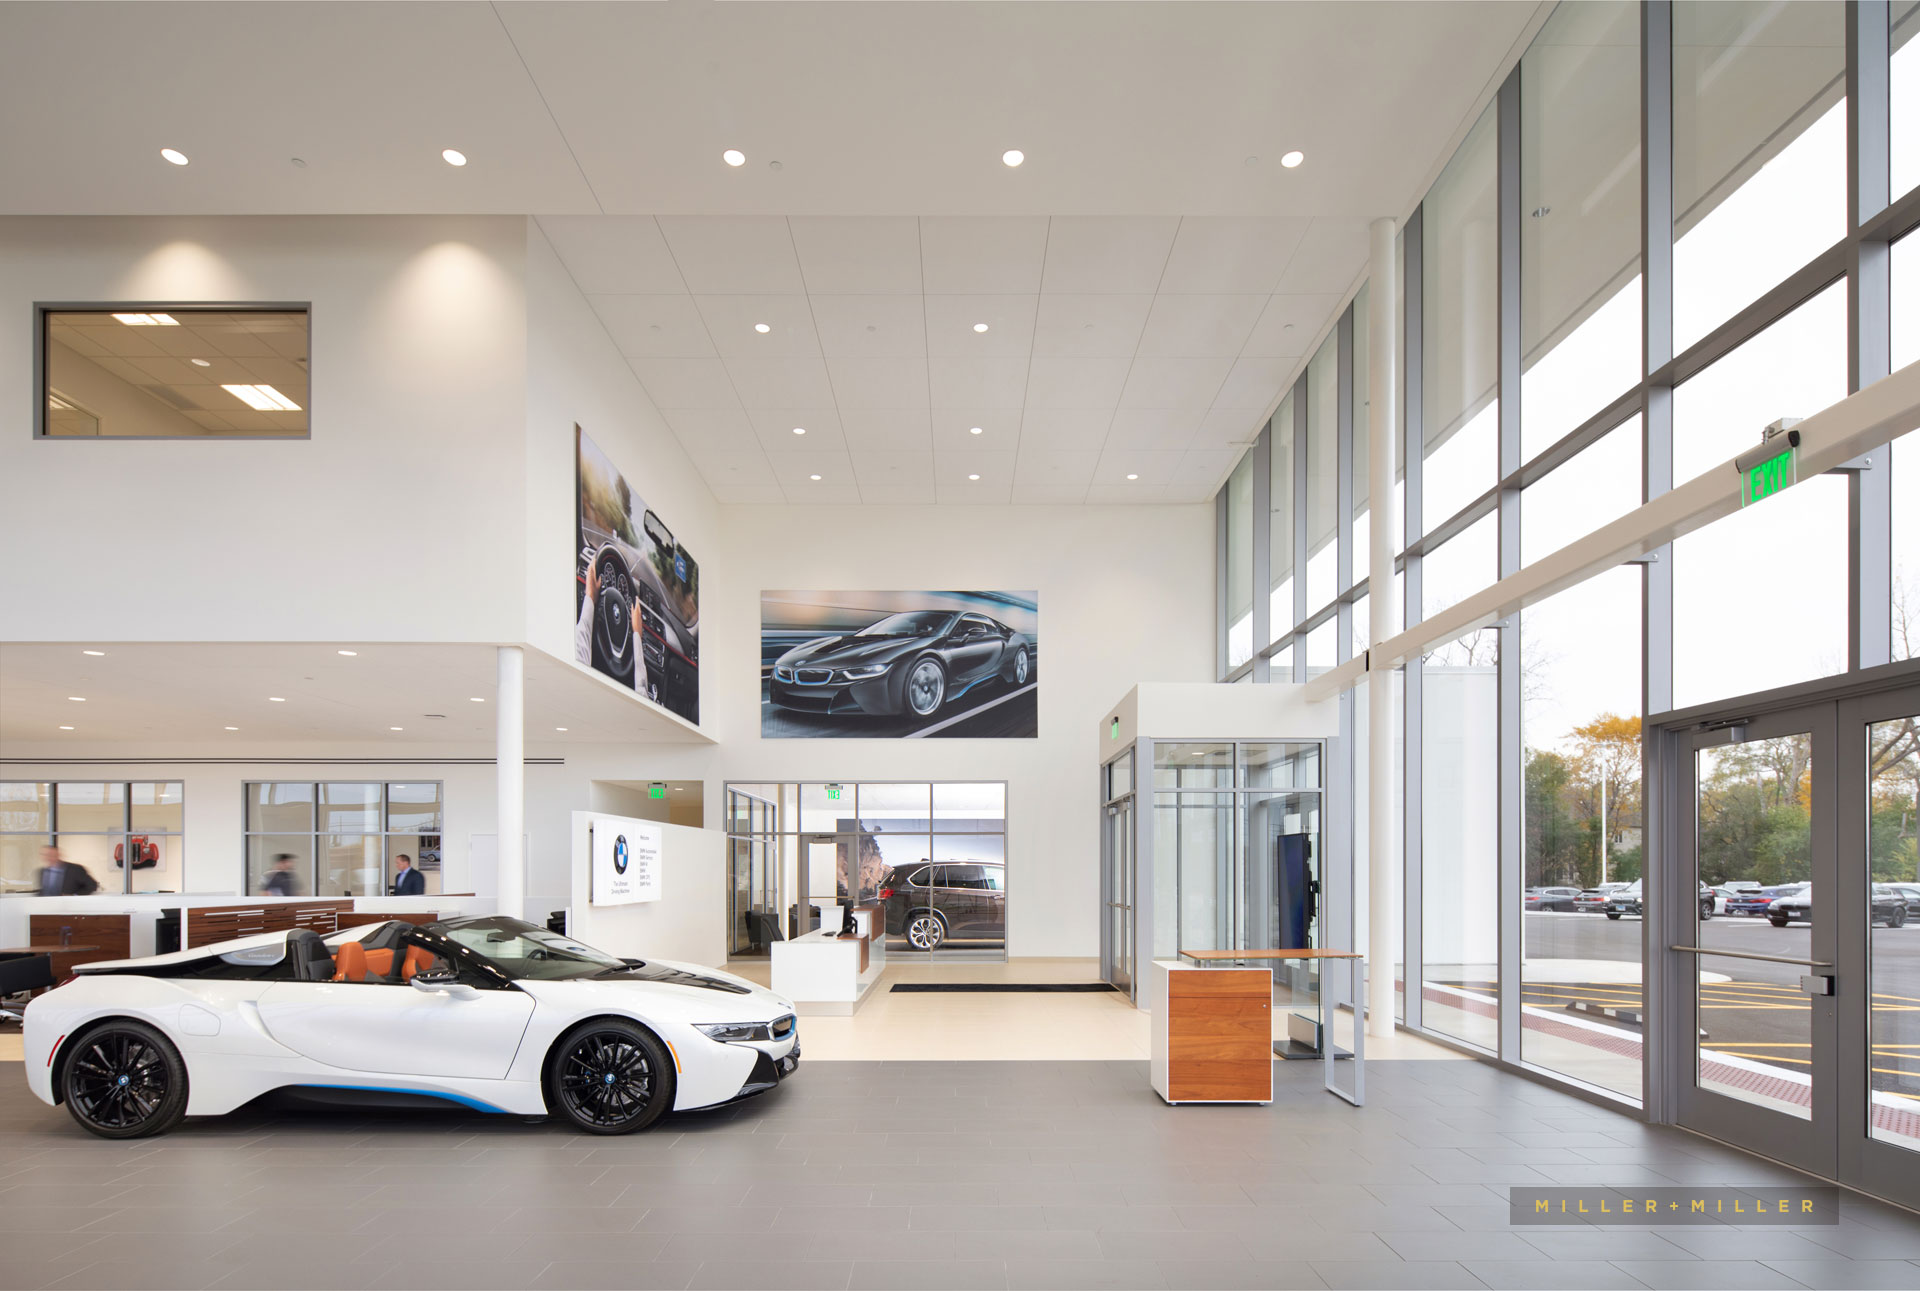 Chicago car auto dealership interior photography